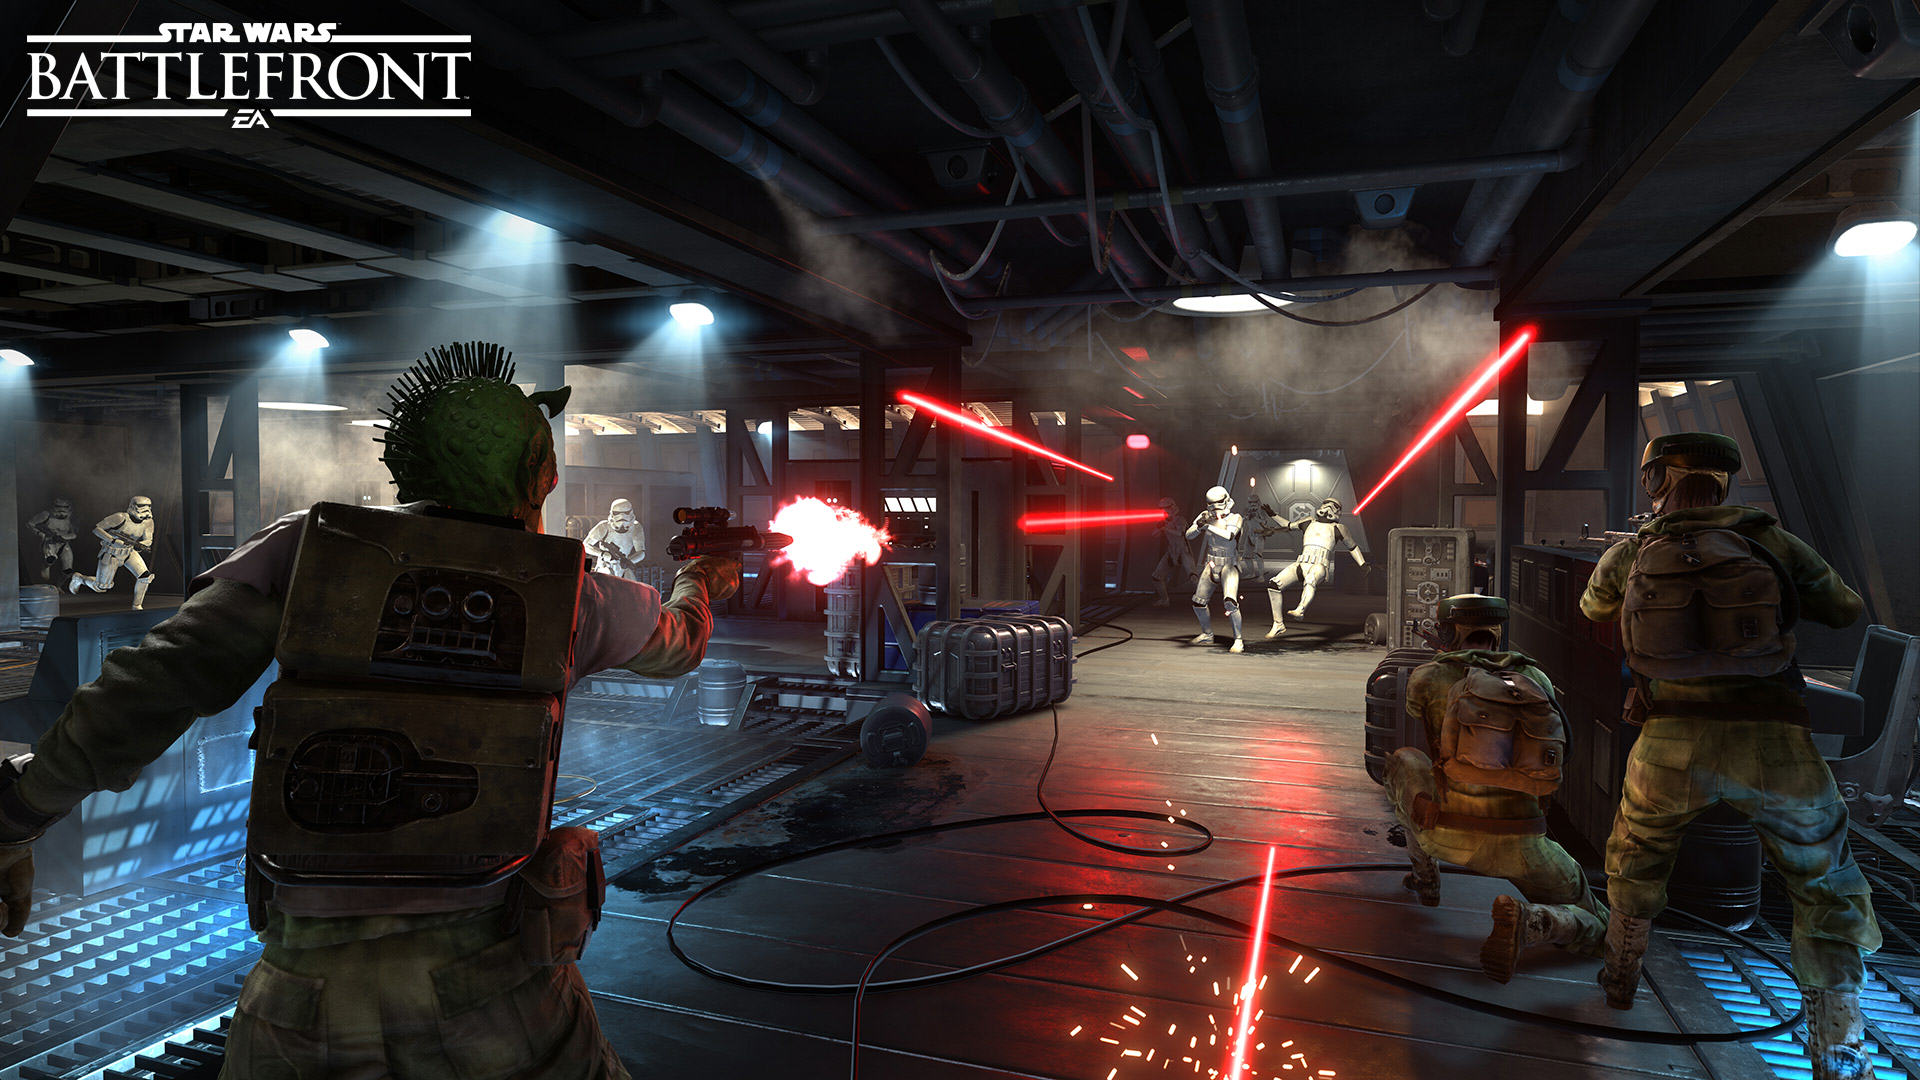 Star Wars Battlefront DLC Will Include New Universes, Weapons And More UNILAD featuredImage.img 40485